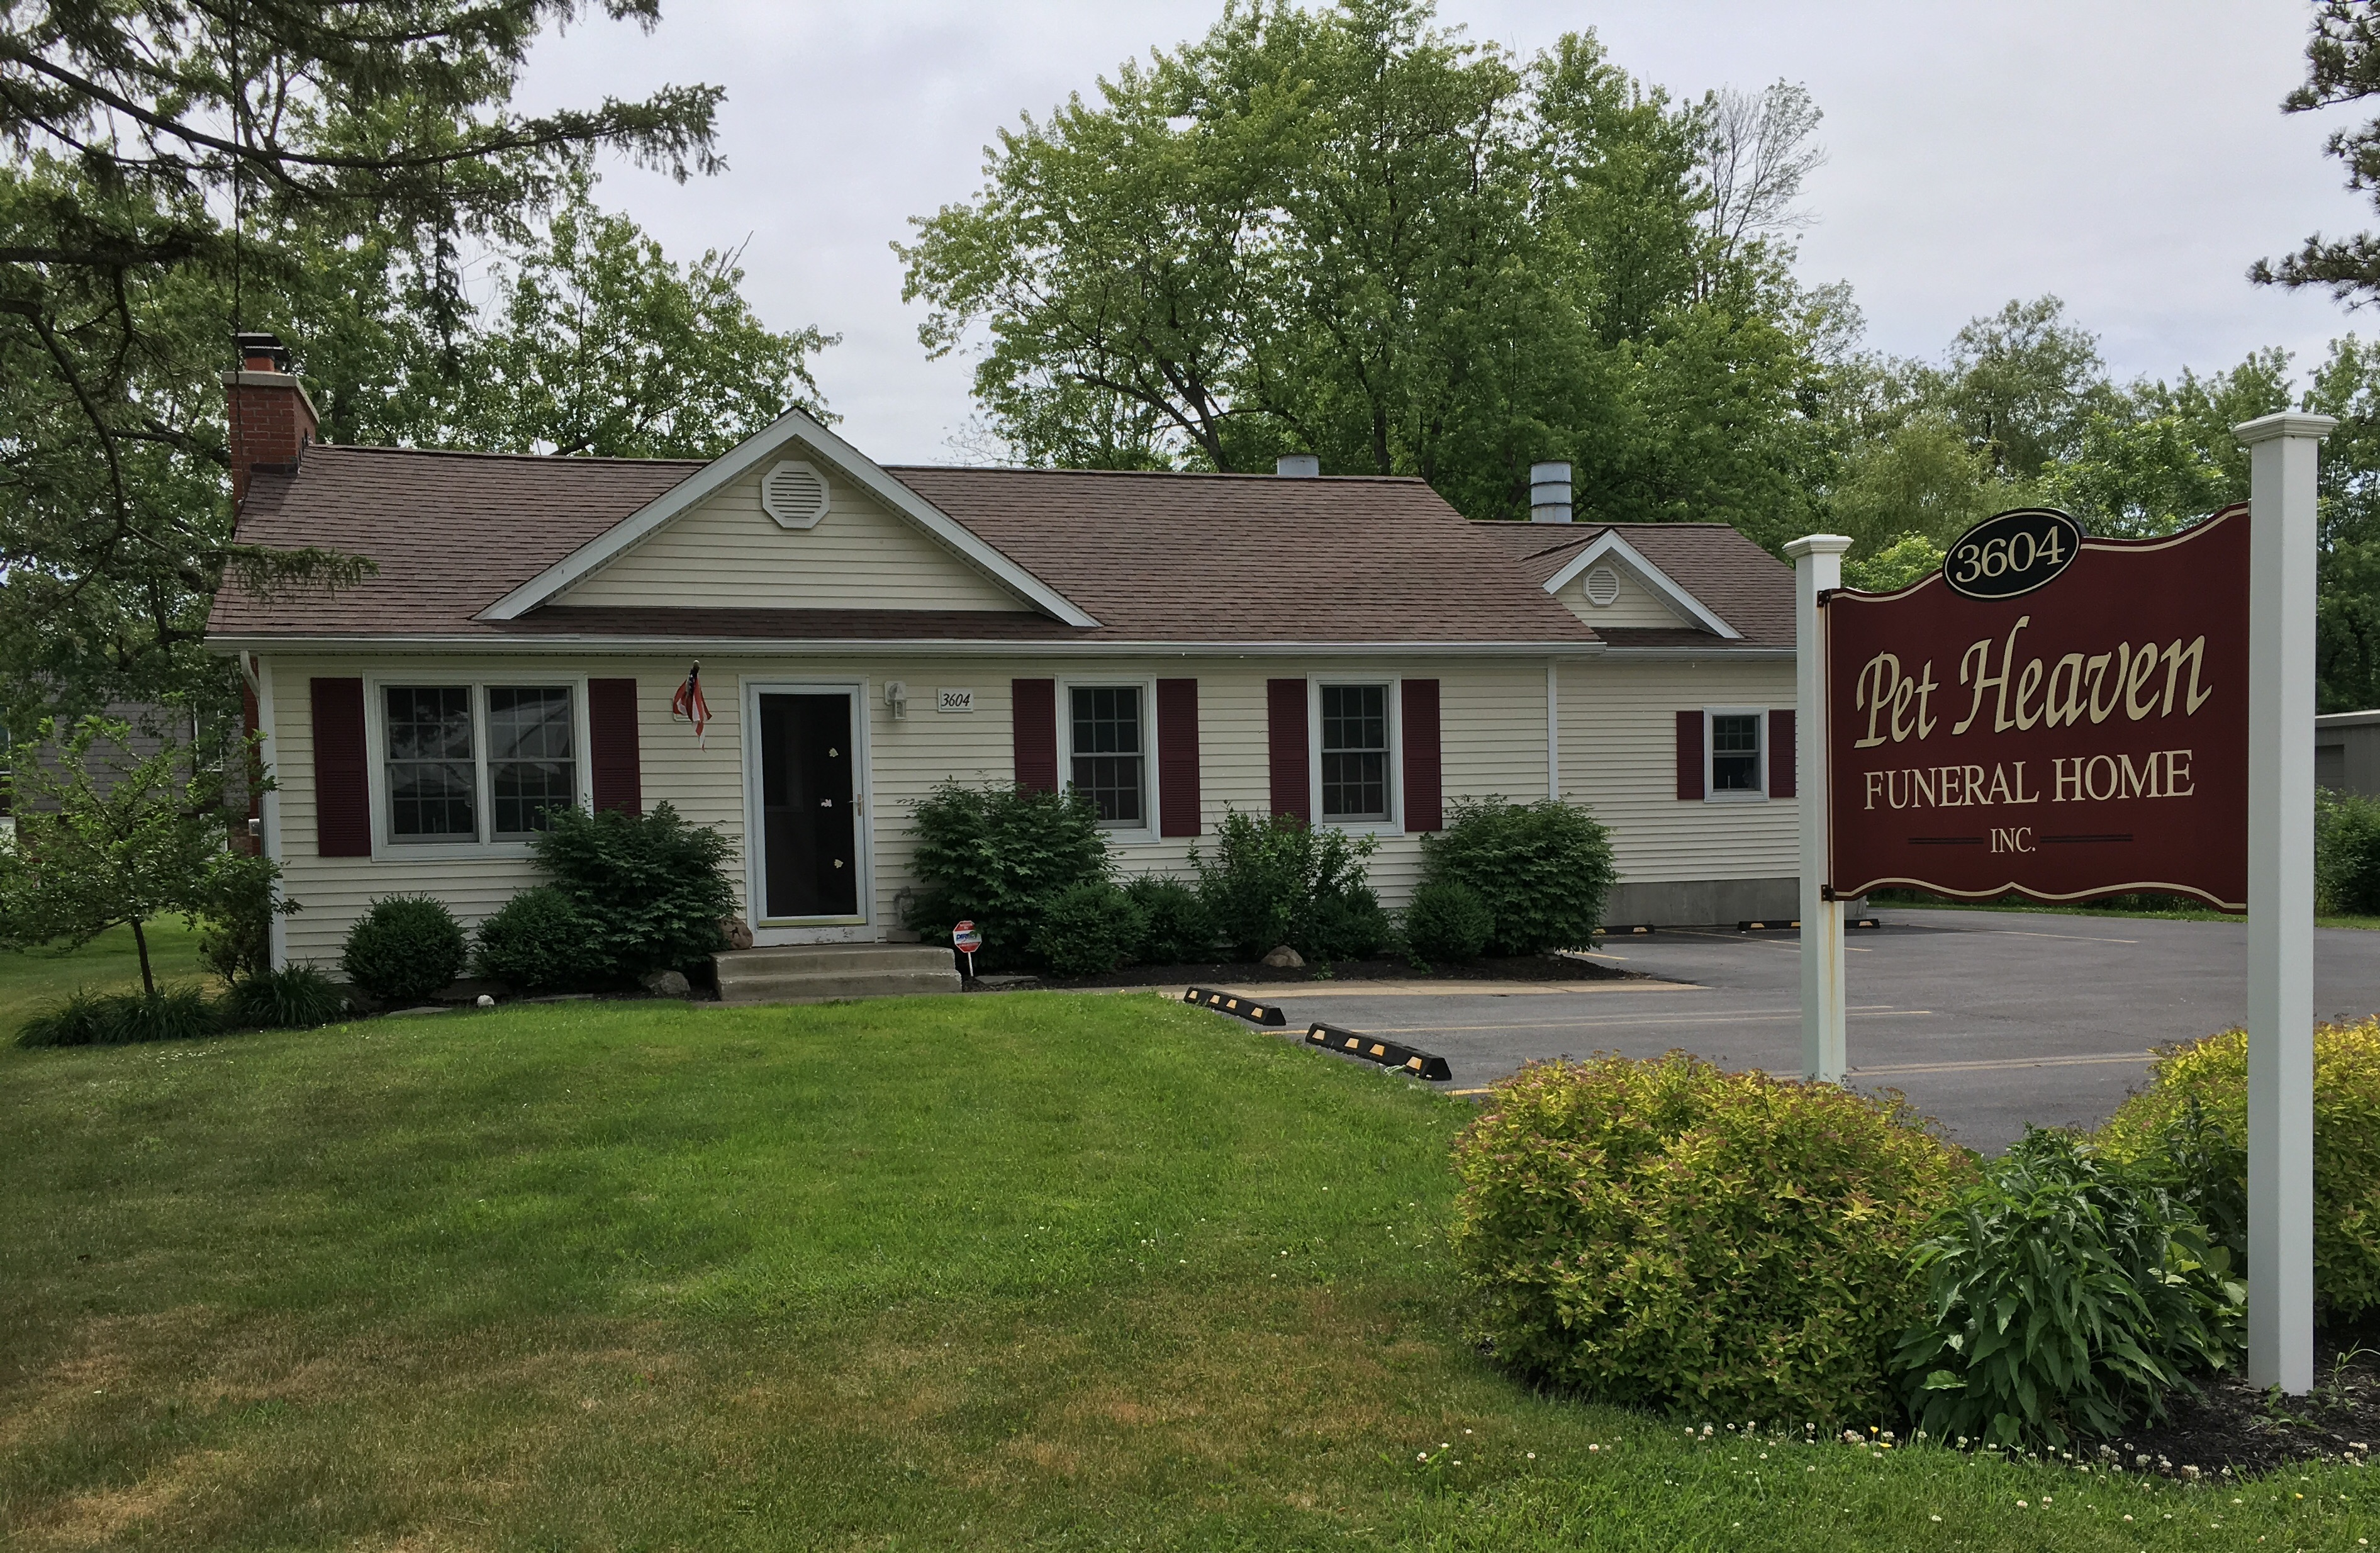 Cannan Funeral Home Orchard Park Ny